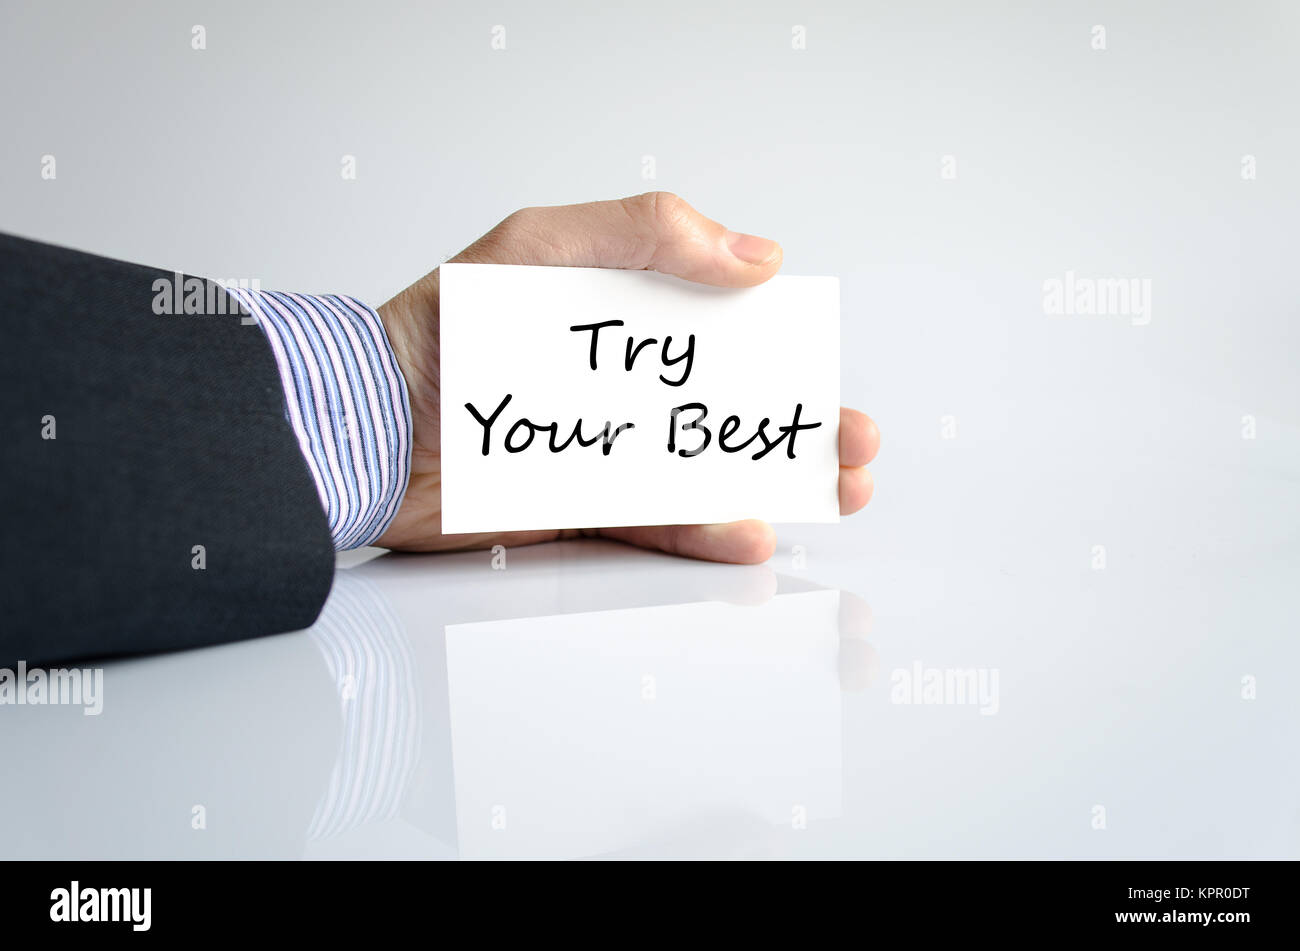 Try your best text concept Stock Photo